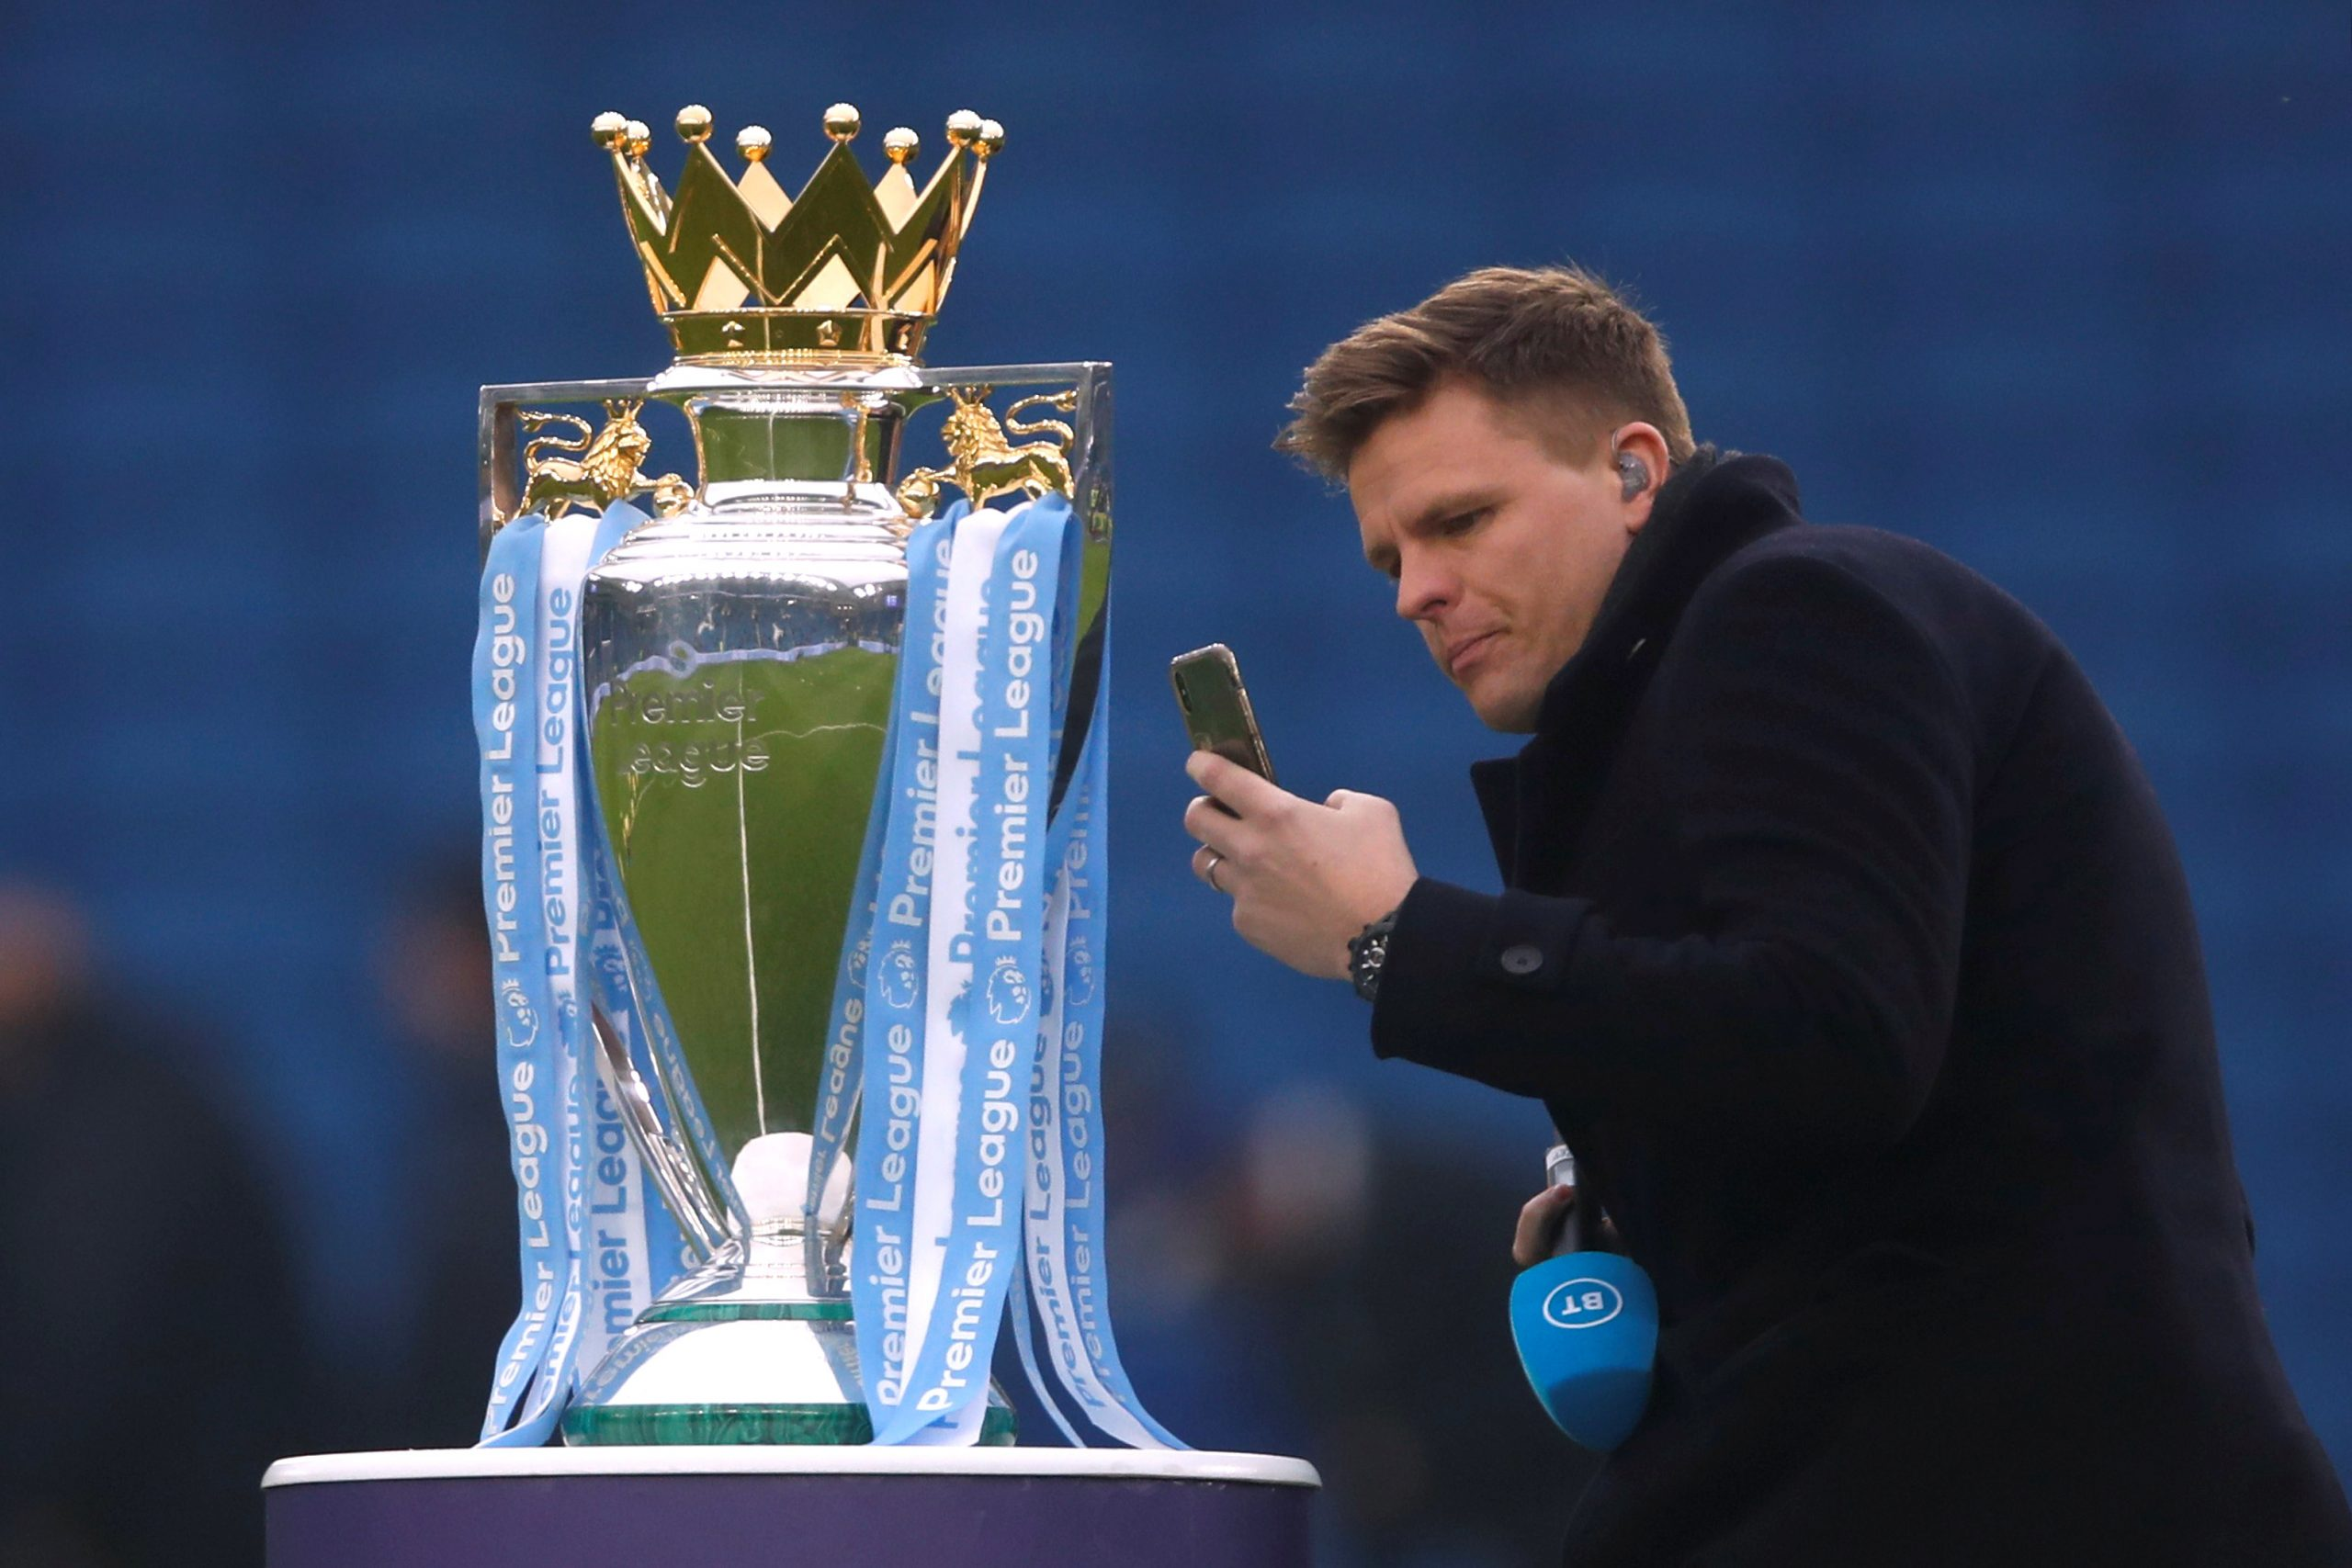 Sky Sports give PL a £371m boost amidst economic crisis in football